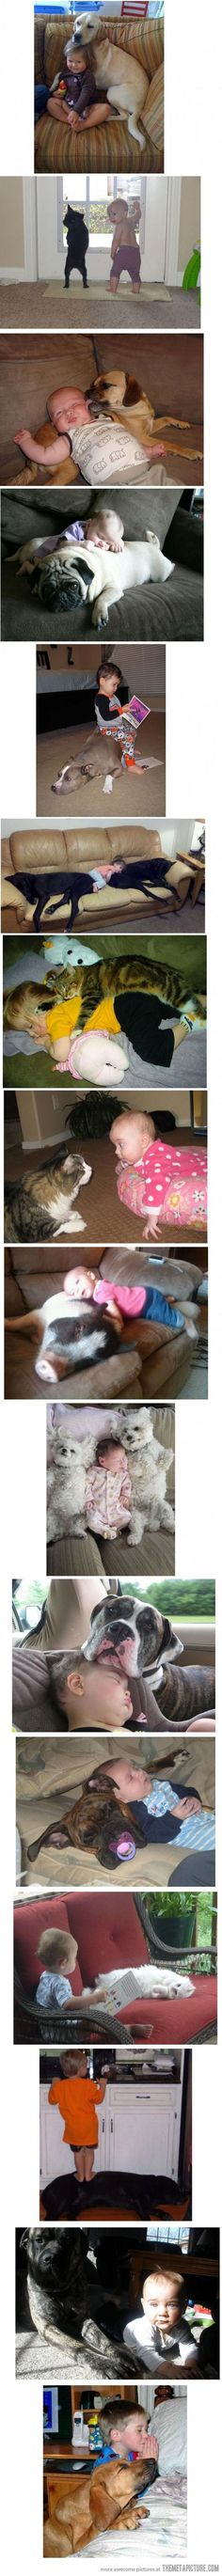 Every child needs a pet :)